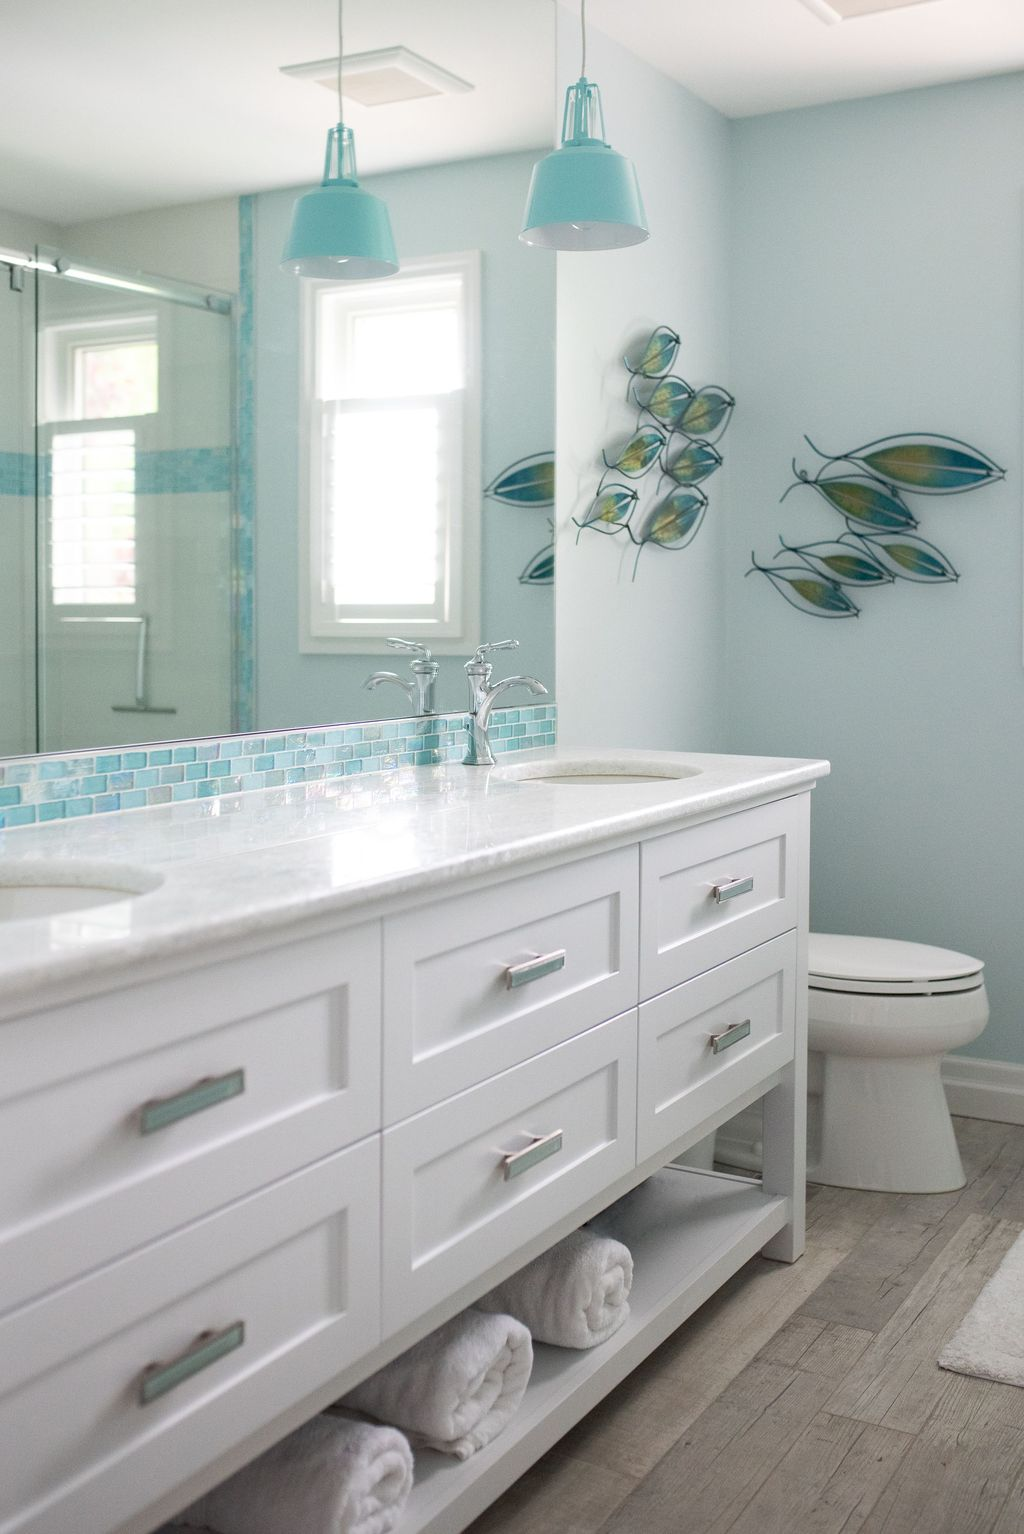 Fabulous Bathroom Decor Ideas With Coastal Style 22